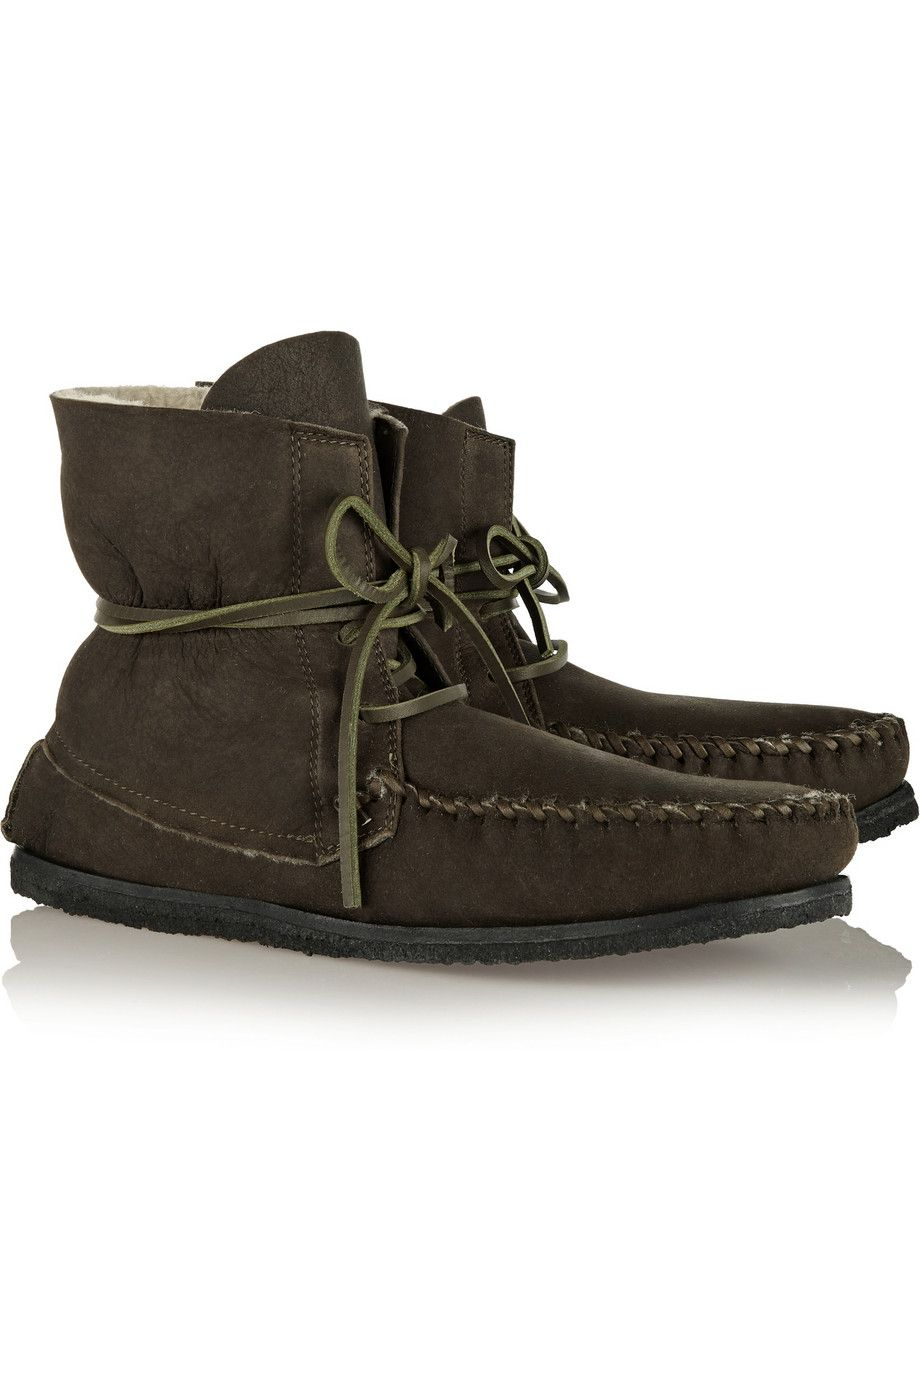 ae6ee4e4d3 Étoile Isabel MarantEve nubuck bootsfront | boots.....made for ...